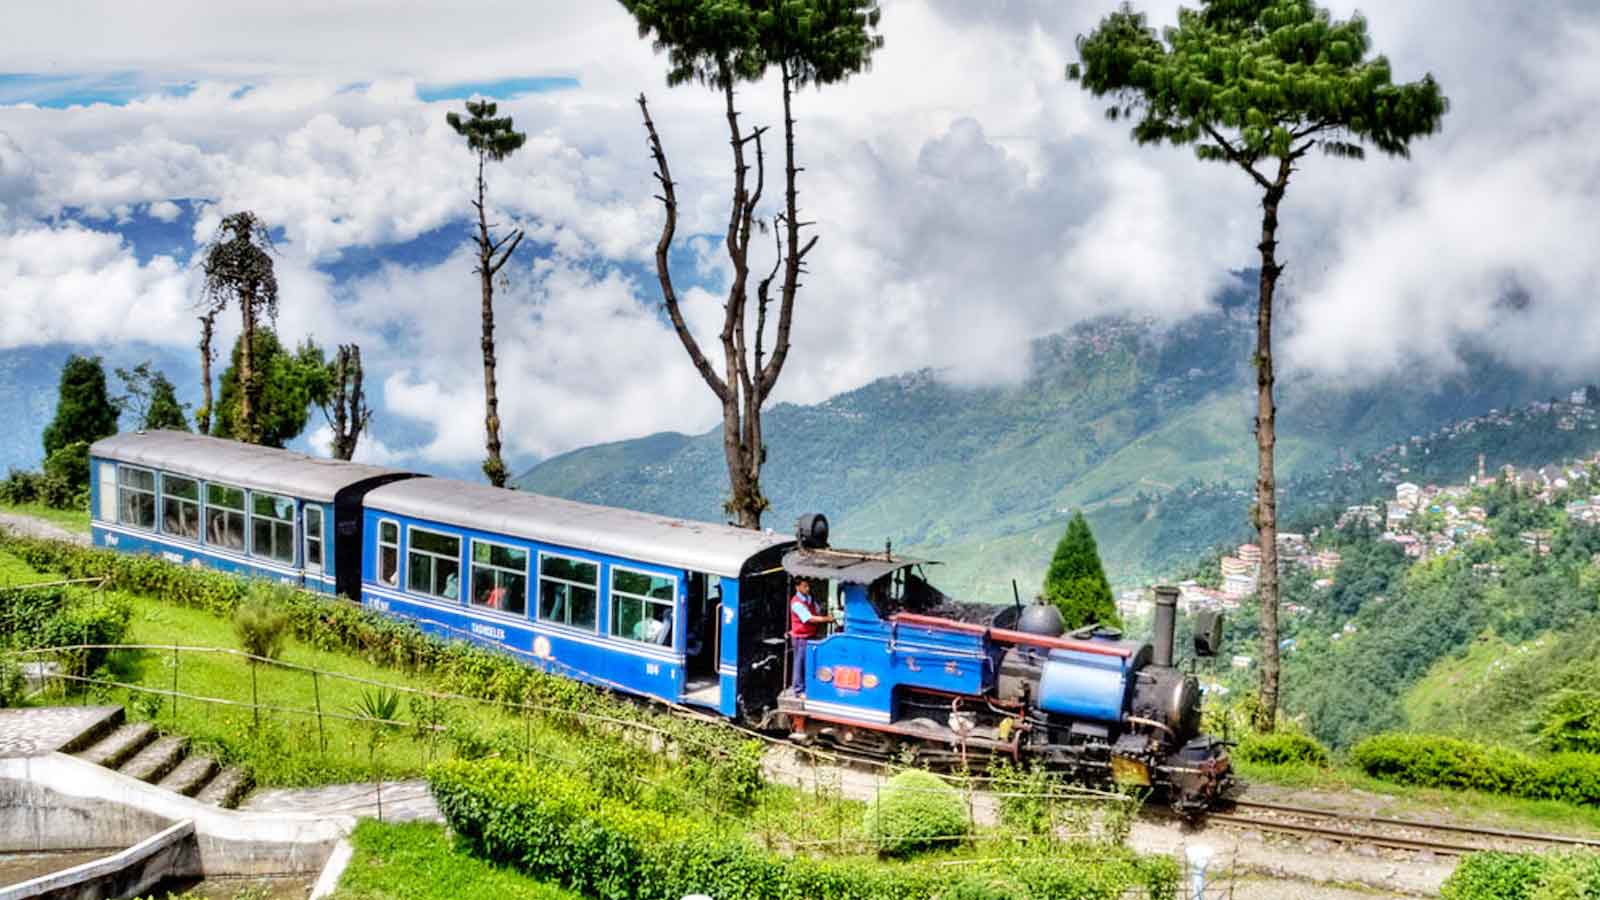 How ball room dance steps helped Darjeeling Toy Train journey